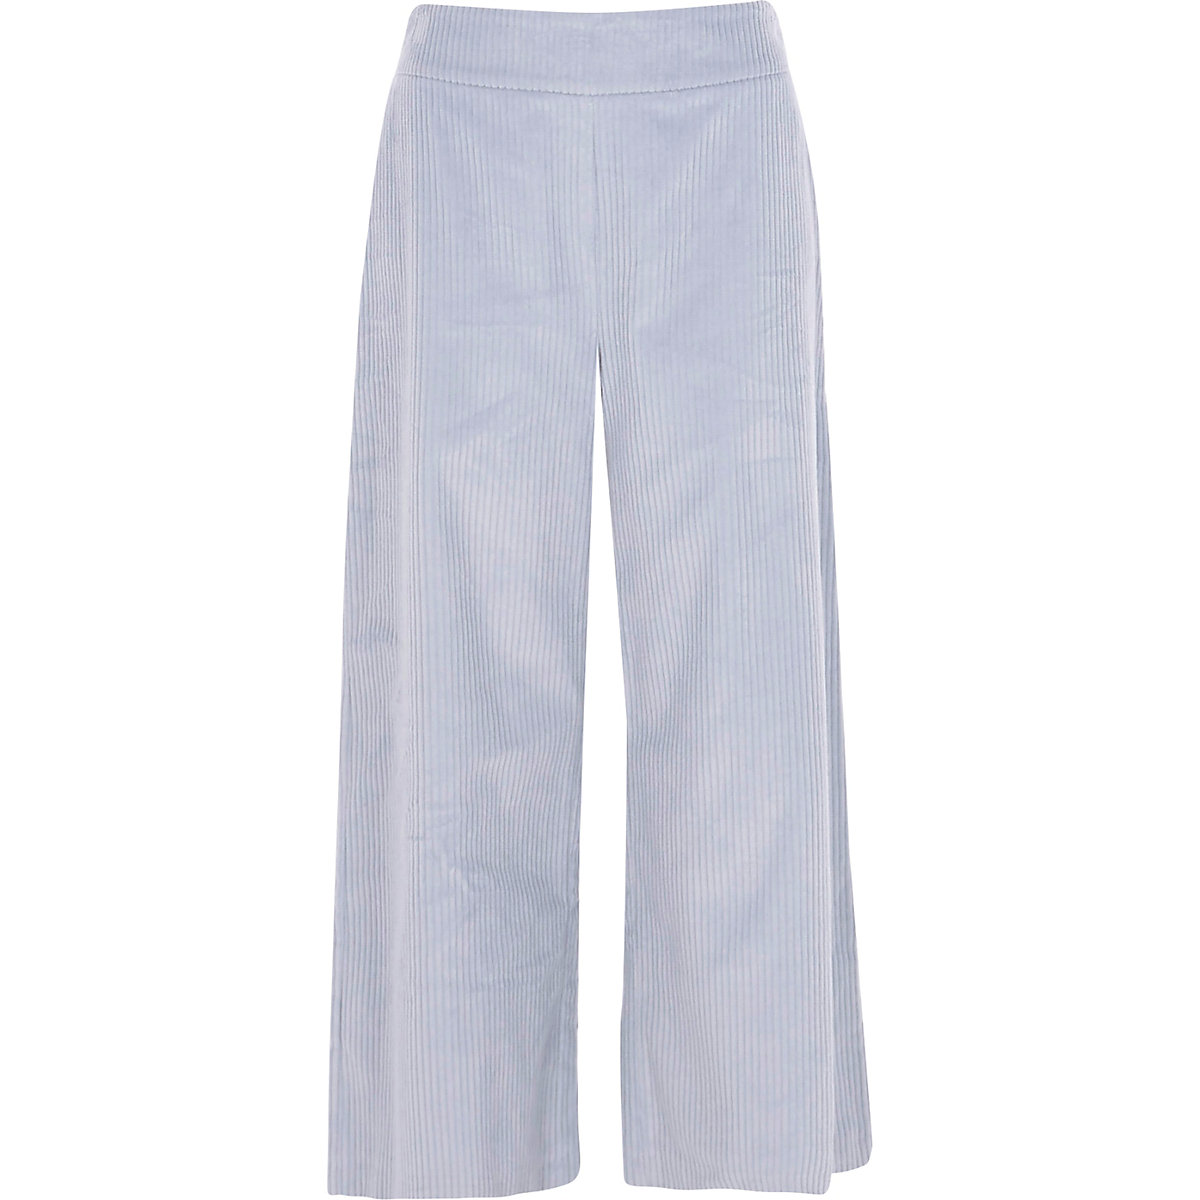 Light blue corduroy culottes